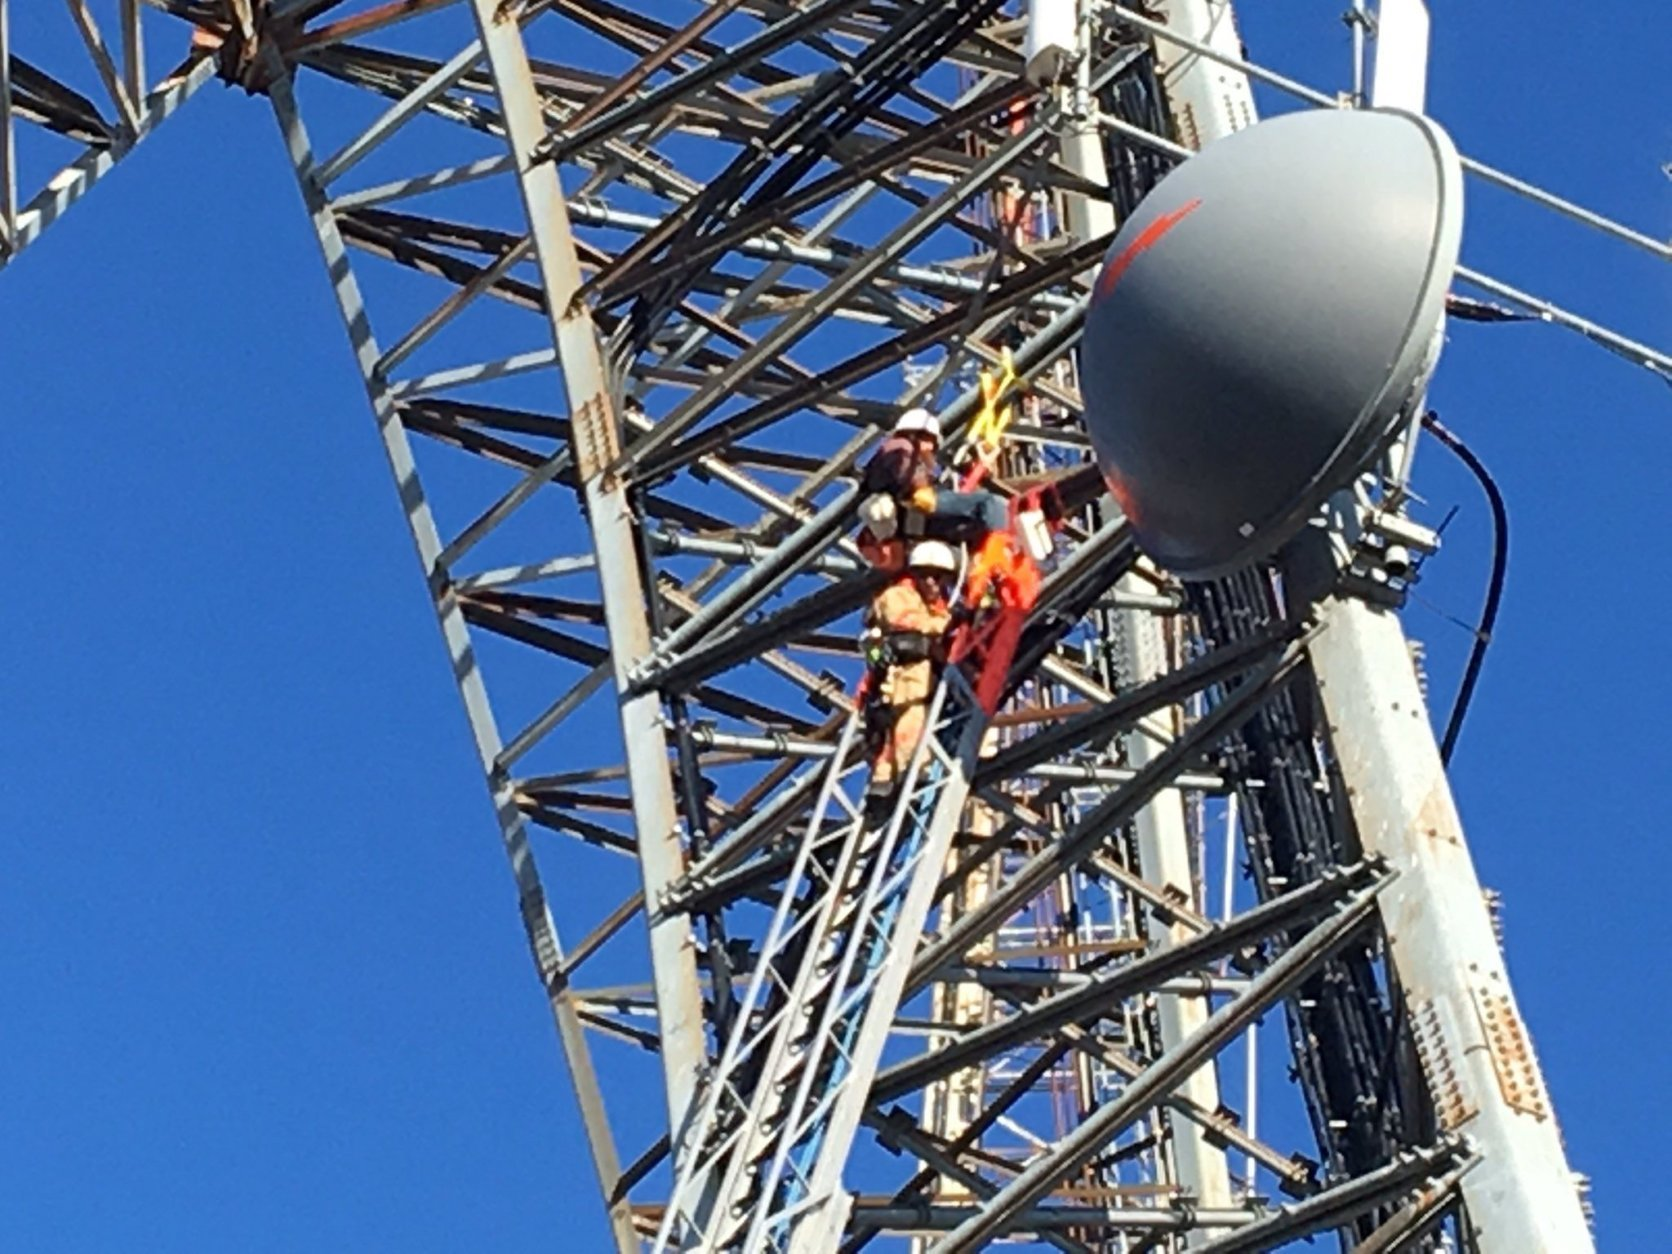 Zoom-in picture of a worker attempting to climb down from a radio tower in D.C. (Courtesy DC Fire and EMS/Twitter)